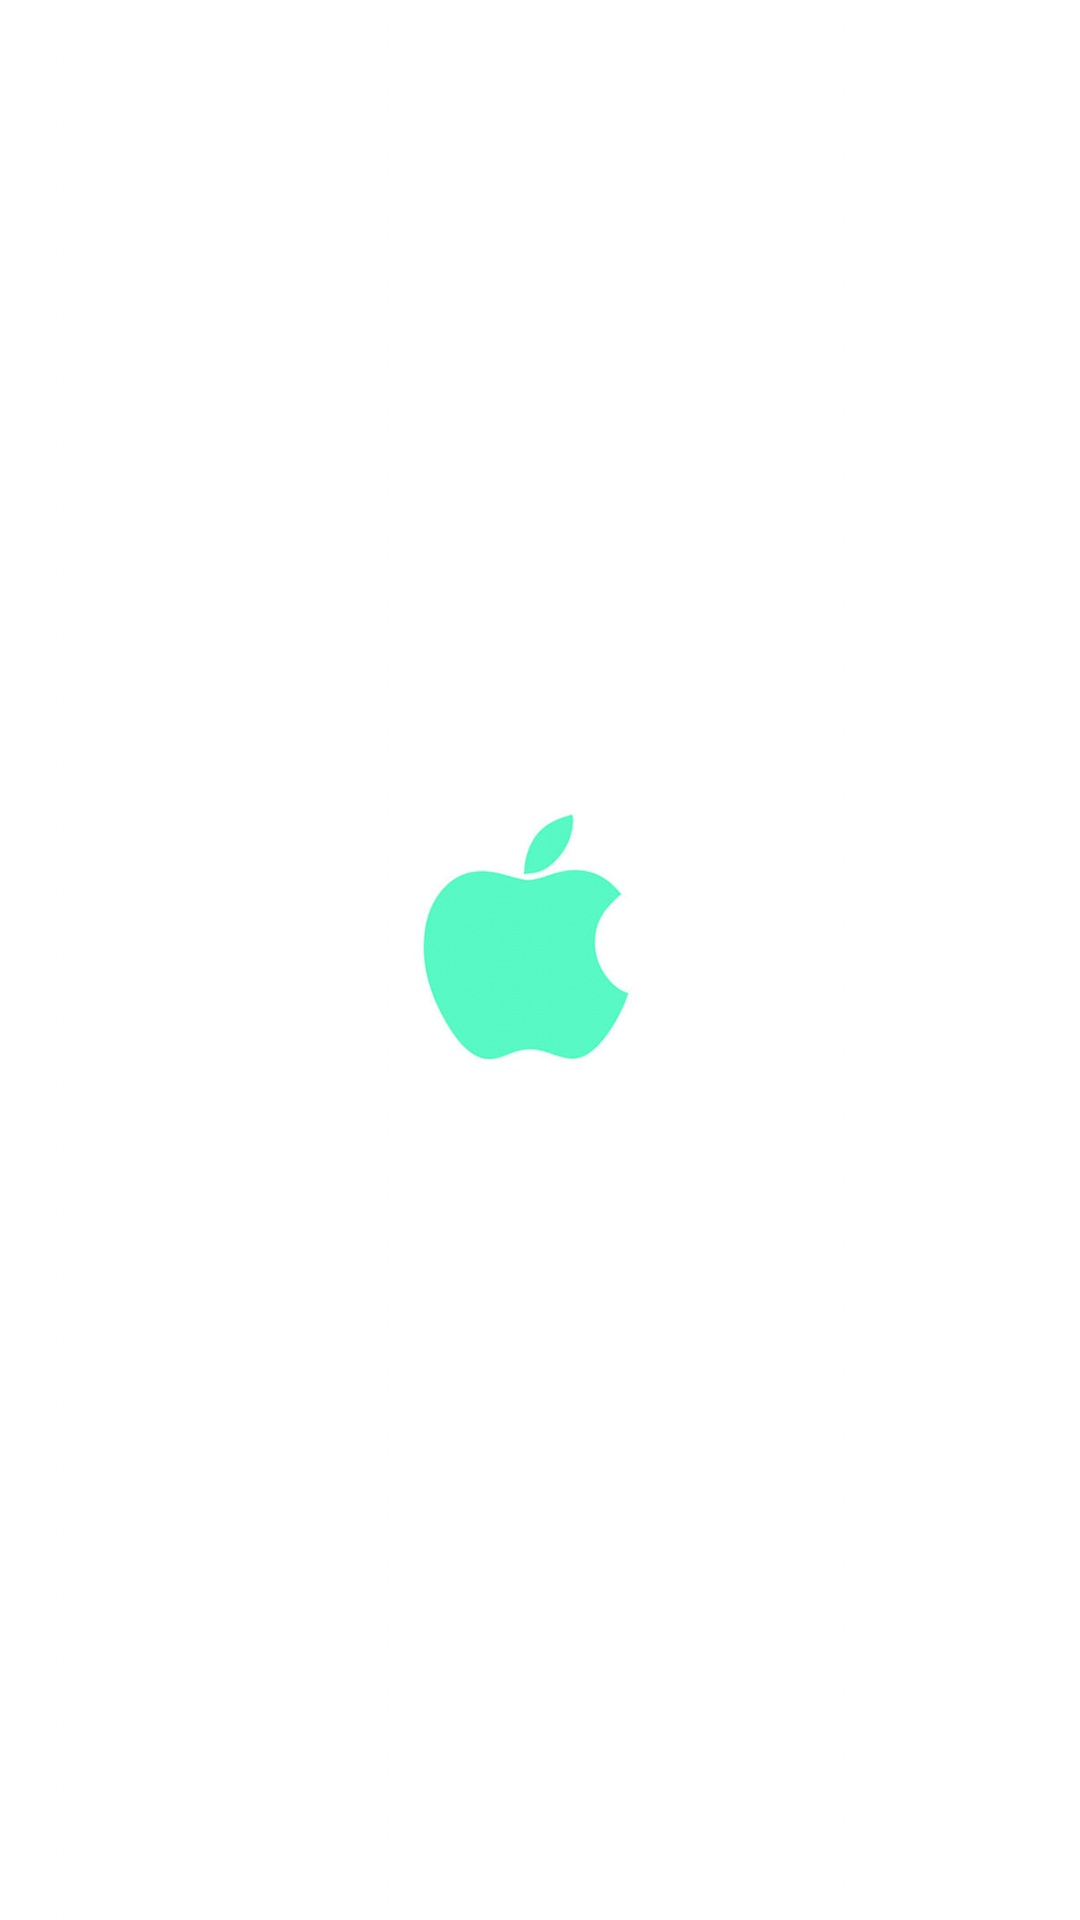 Best-of-Macintosh-Apple-Logo-Tap-image-for-more-mobile-for-iPhone-wallpaper-wpc5802801